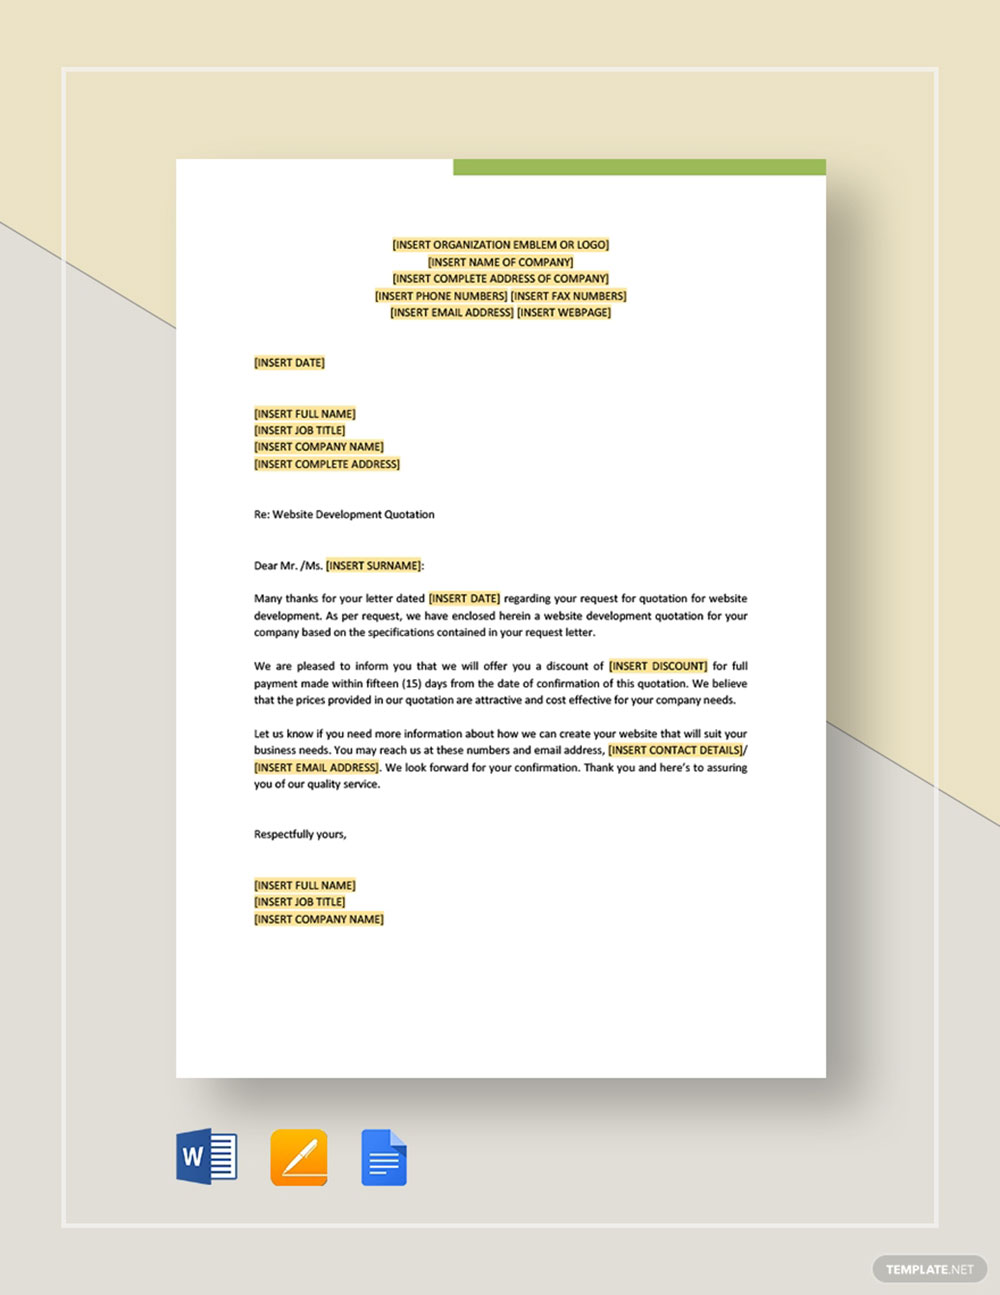 A quotation letter, when put simply, is a letter that is written for the purpose of indicating the price of a product or service and terms & conditions of business. Website Design Quotation Templates And Tips To Set Your Fee